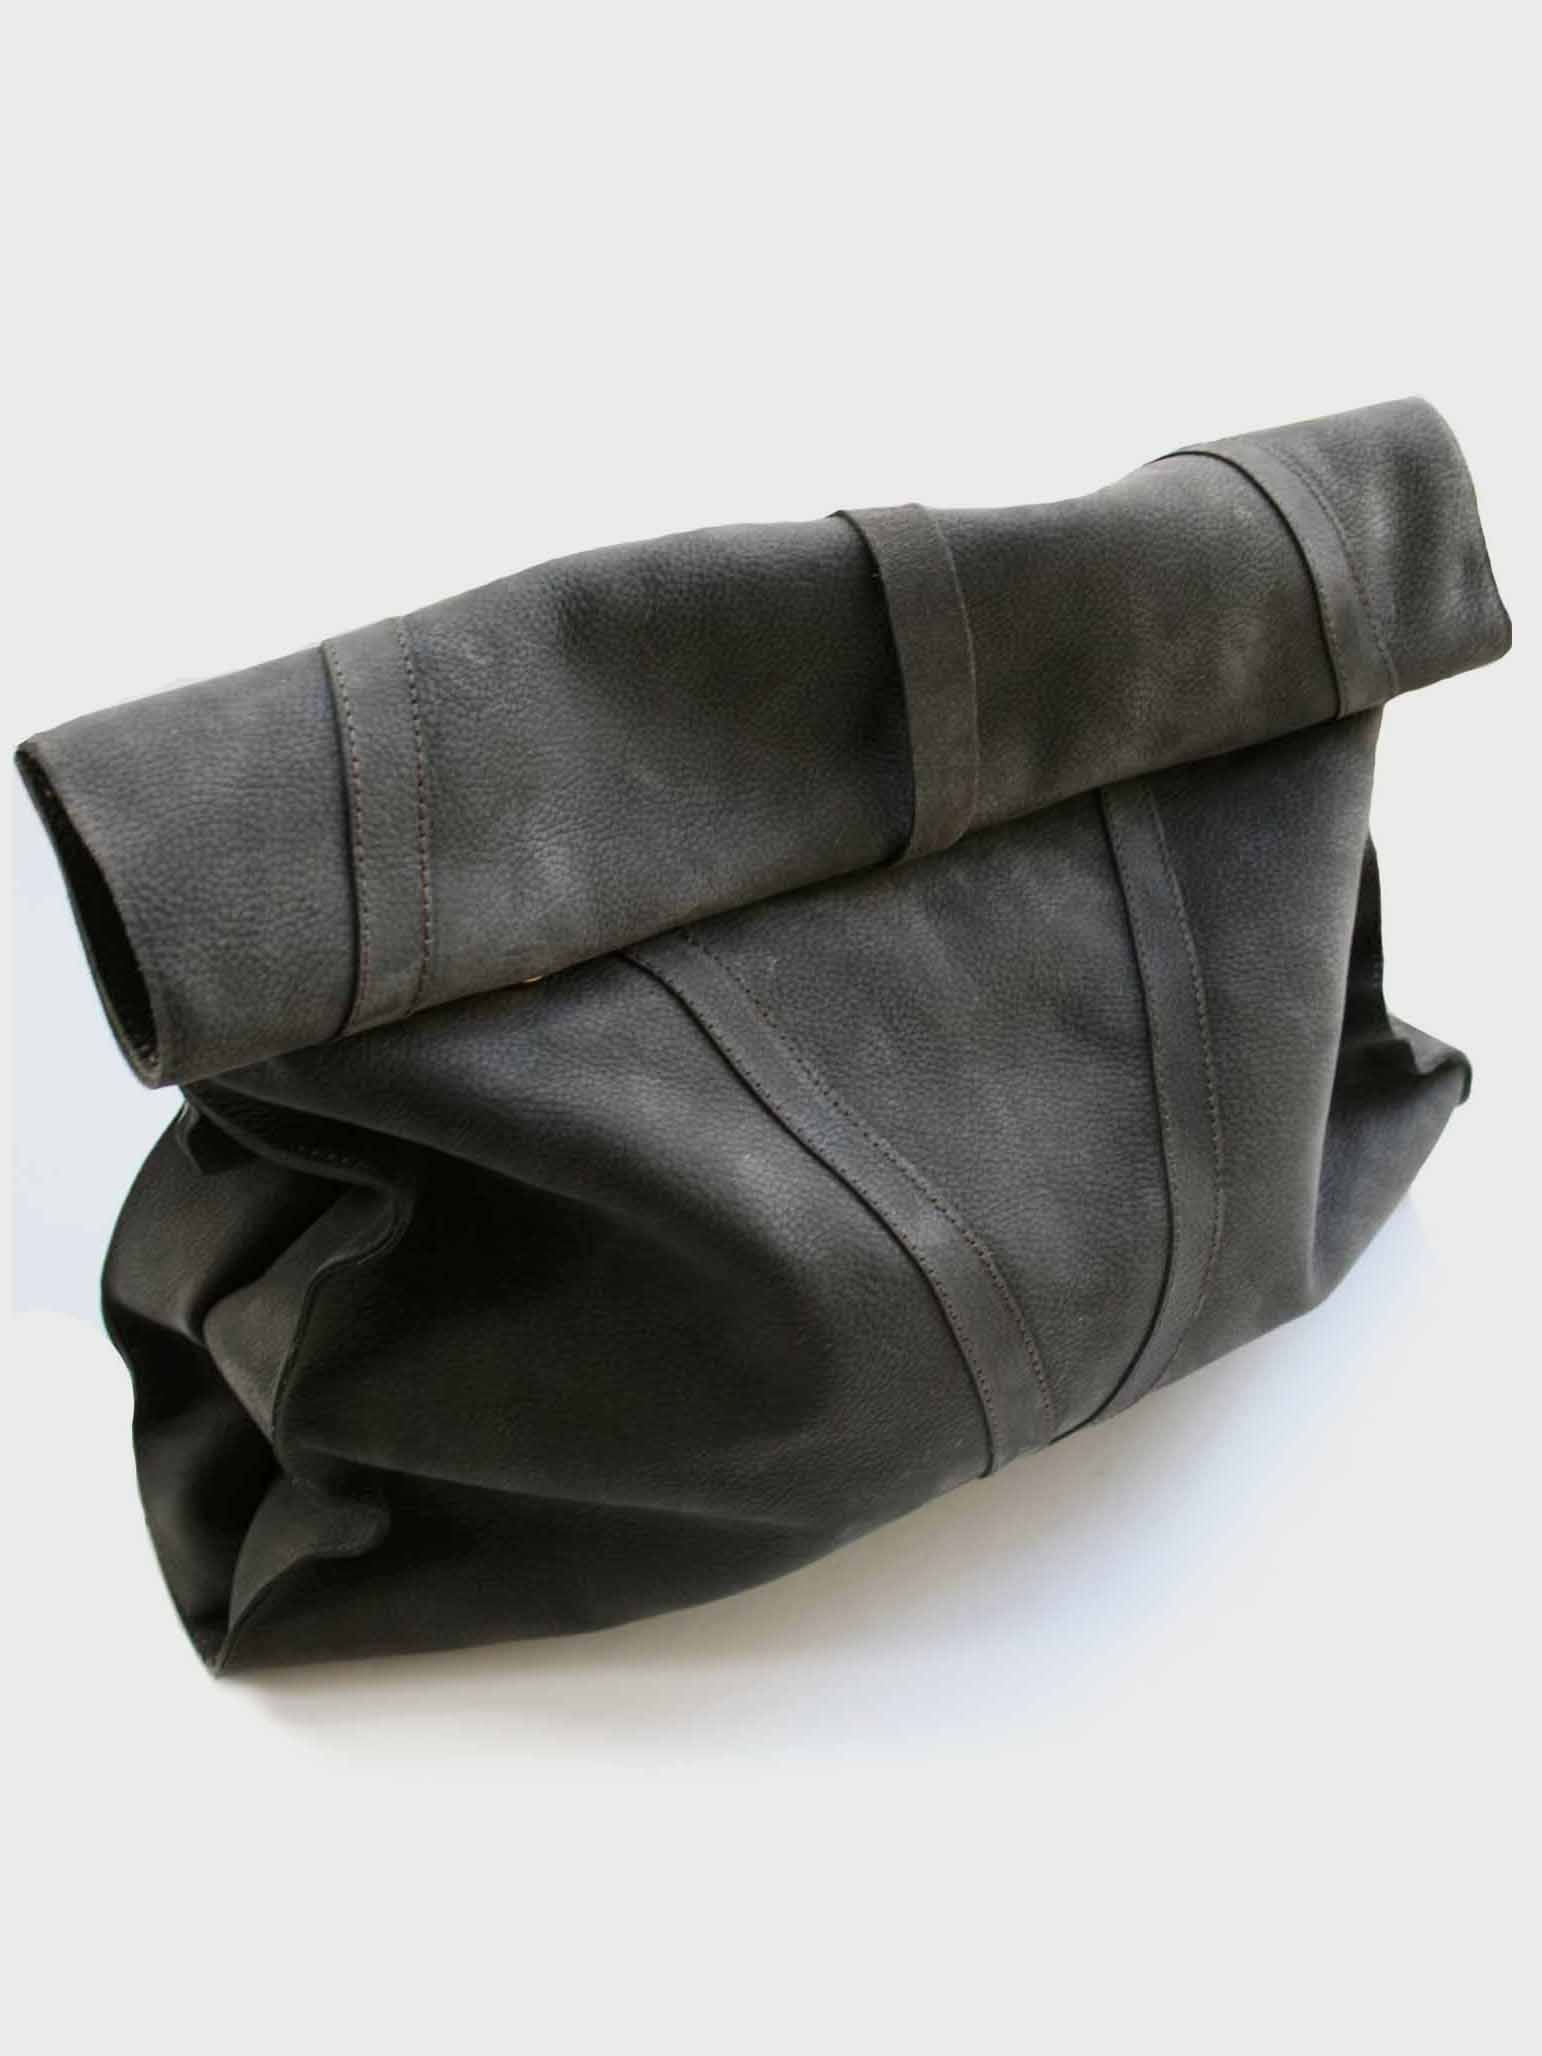 Small hand clutch. But with a hand strip